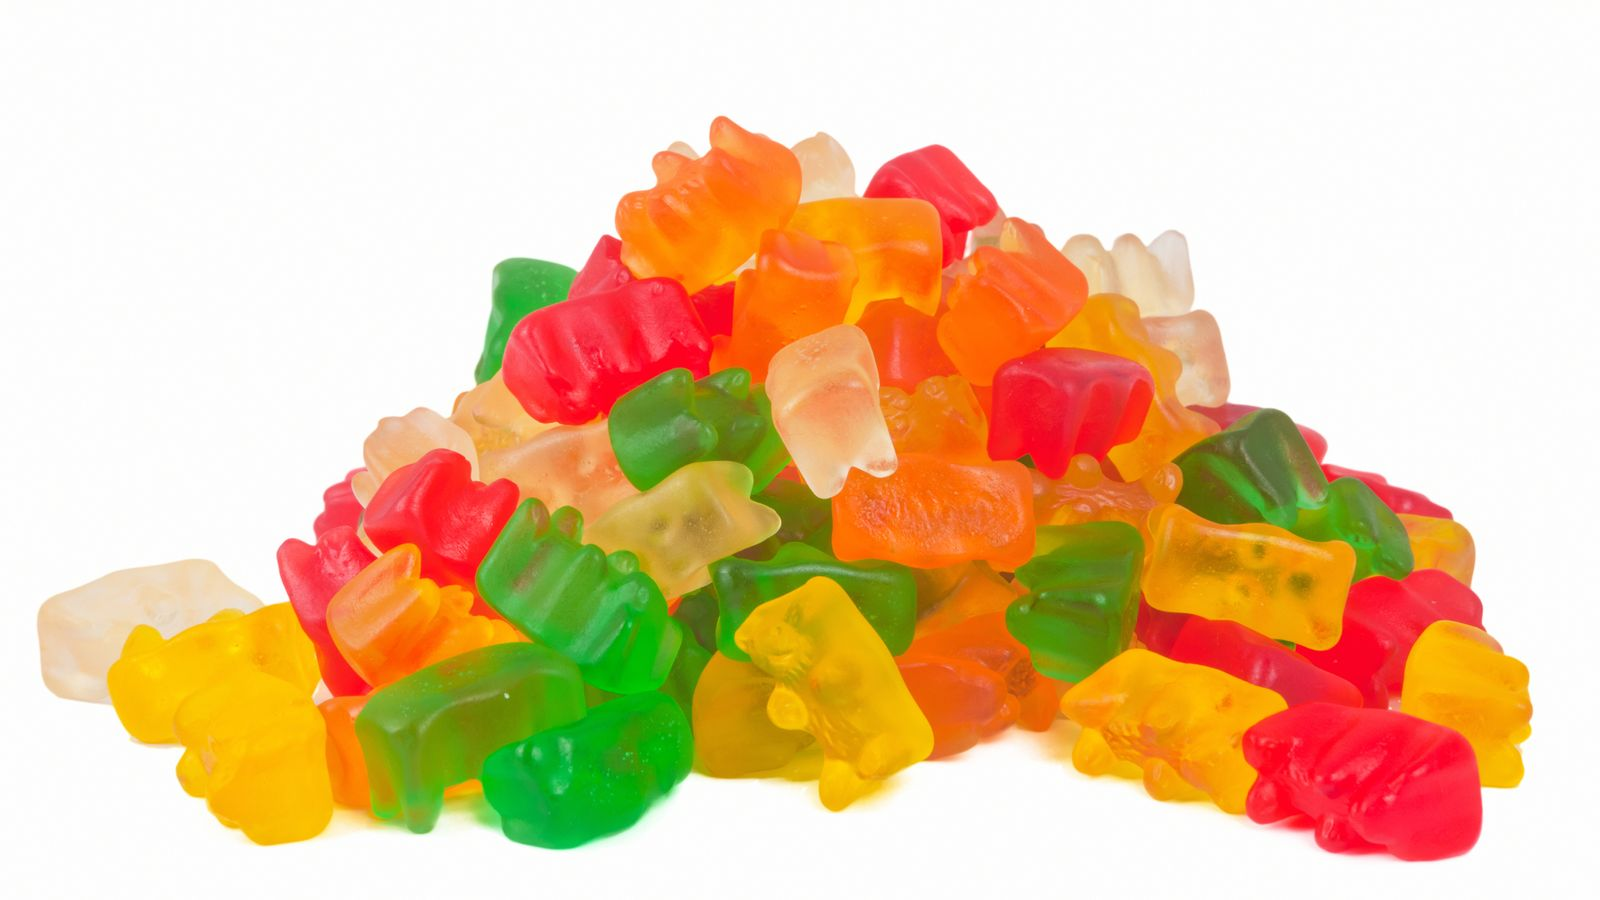 Haribo sweet deliveries to shops gummed up by lorry driver shortage